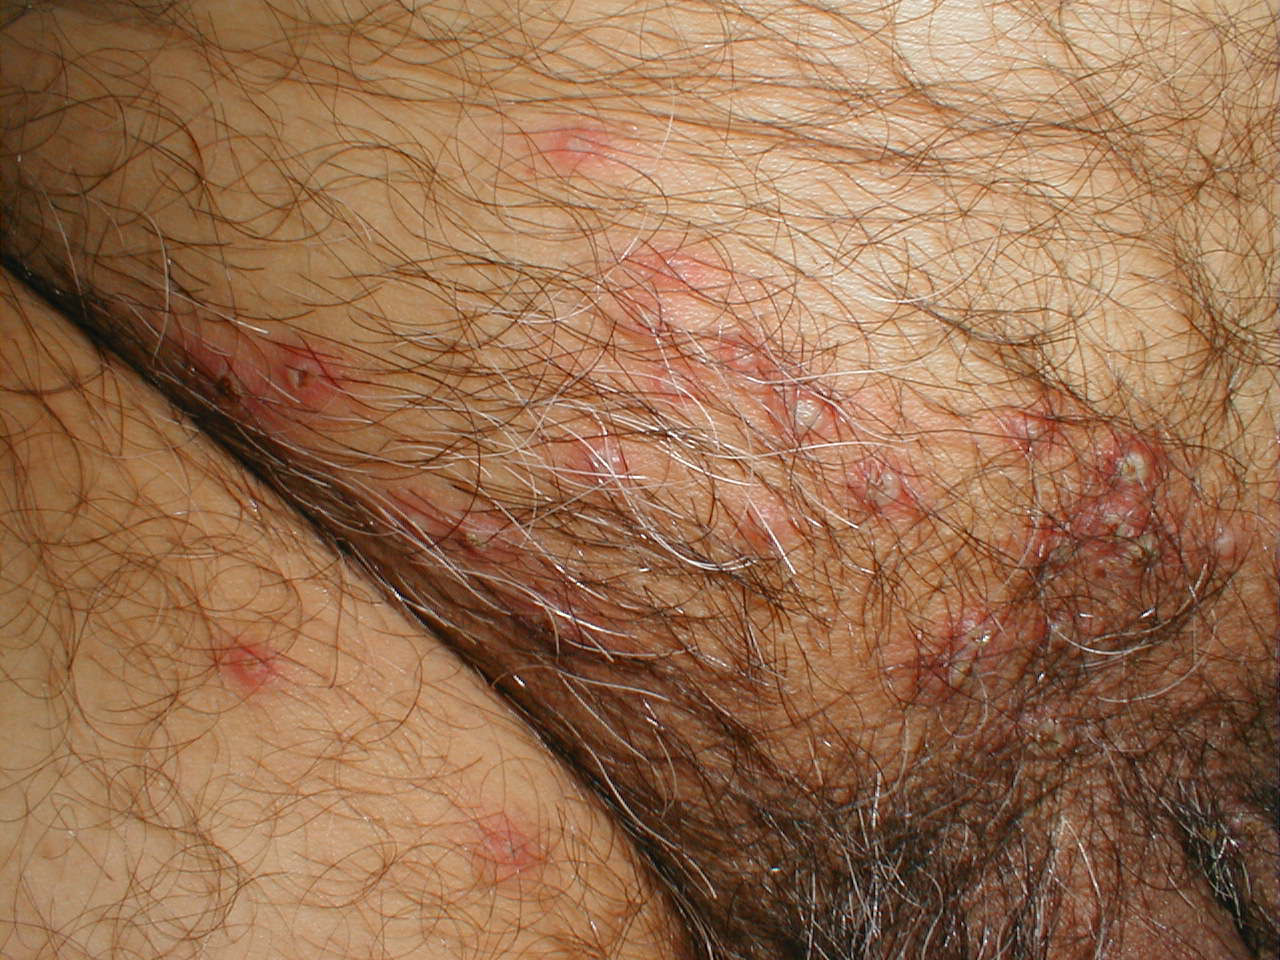 Genital herpes - Symptoms - NHS Choices